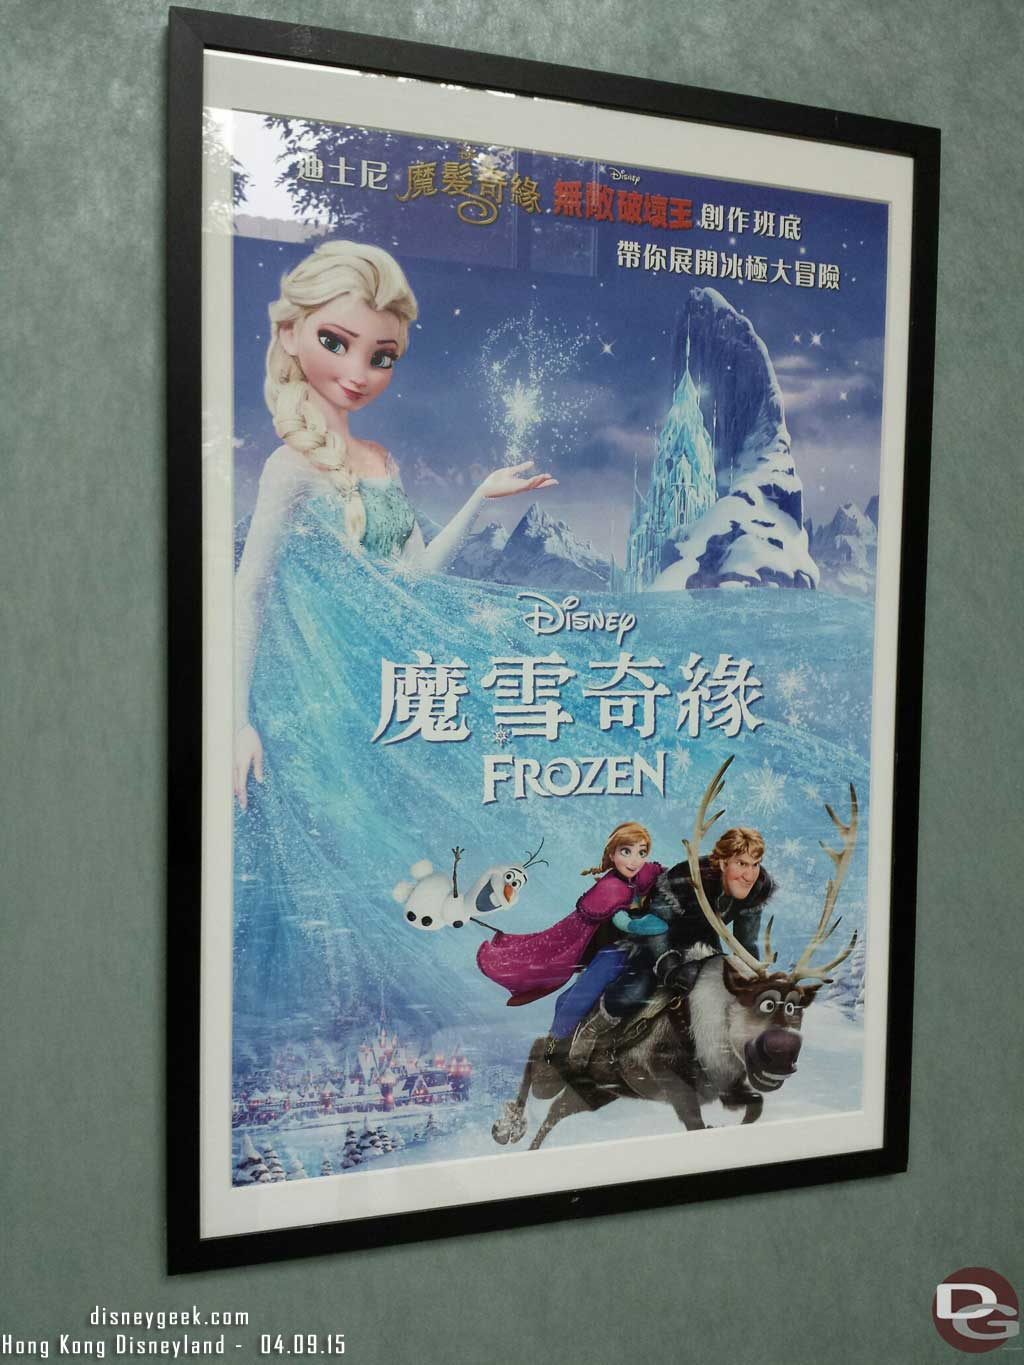 #Frozen movie poster in Disney's Hollywood Hotel #HongKongDisneyland